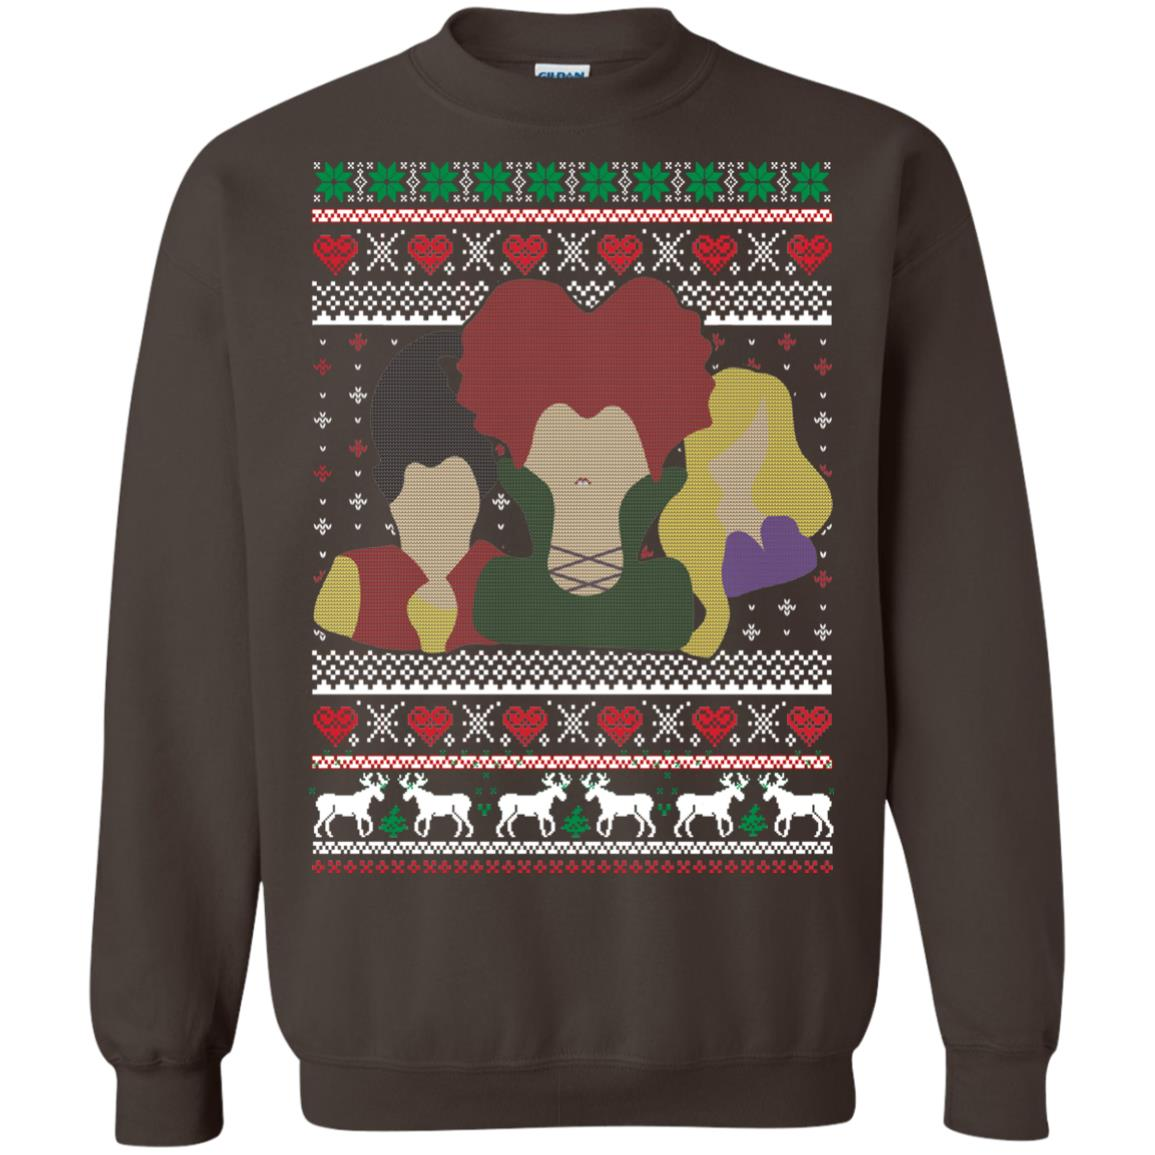 image 647px Hocus Pocus Ugly Christmas Sweater Shirt